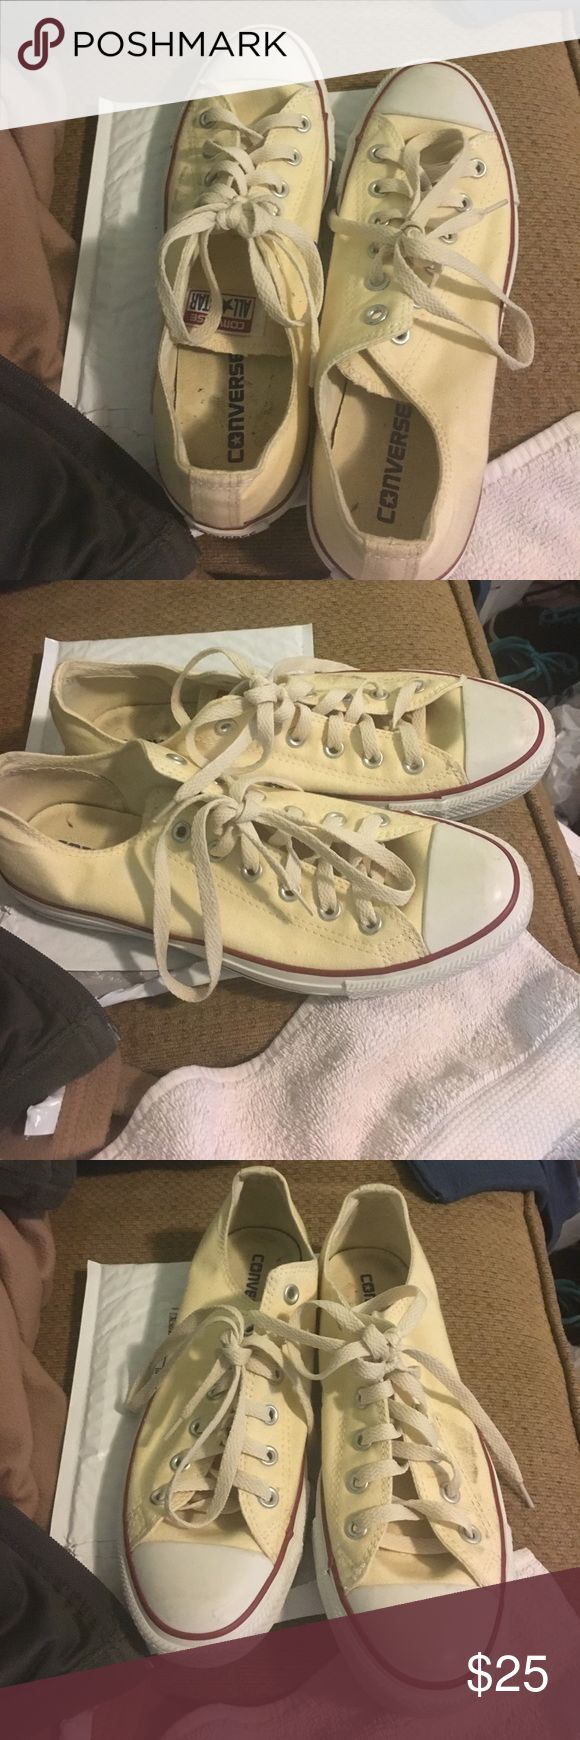 Low tops off white converse It's low tops off white converse in size 10 Converse Shoes Sneakers